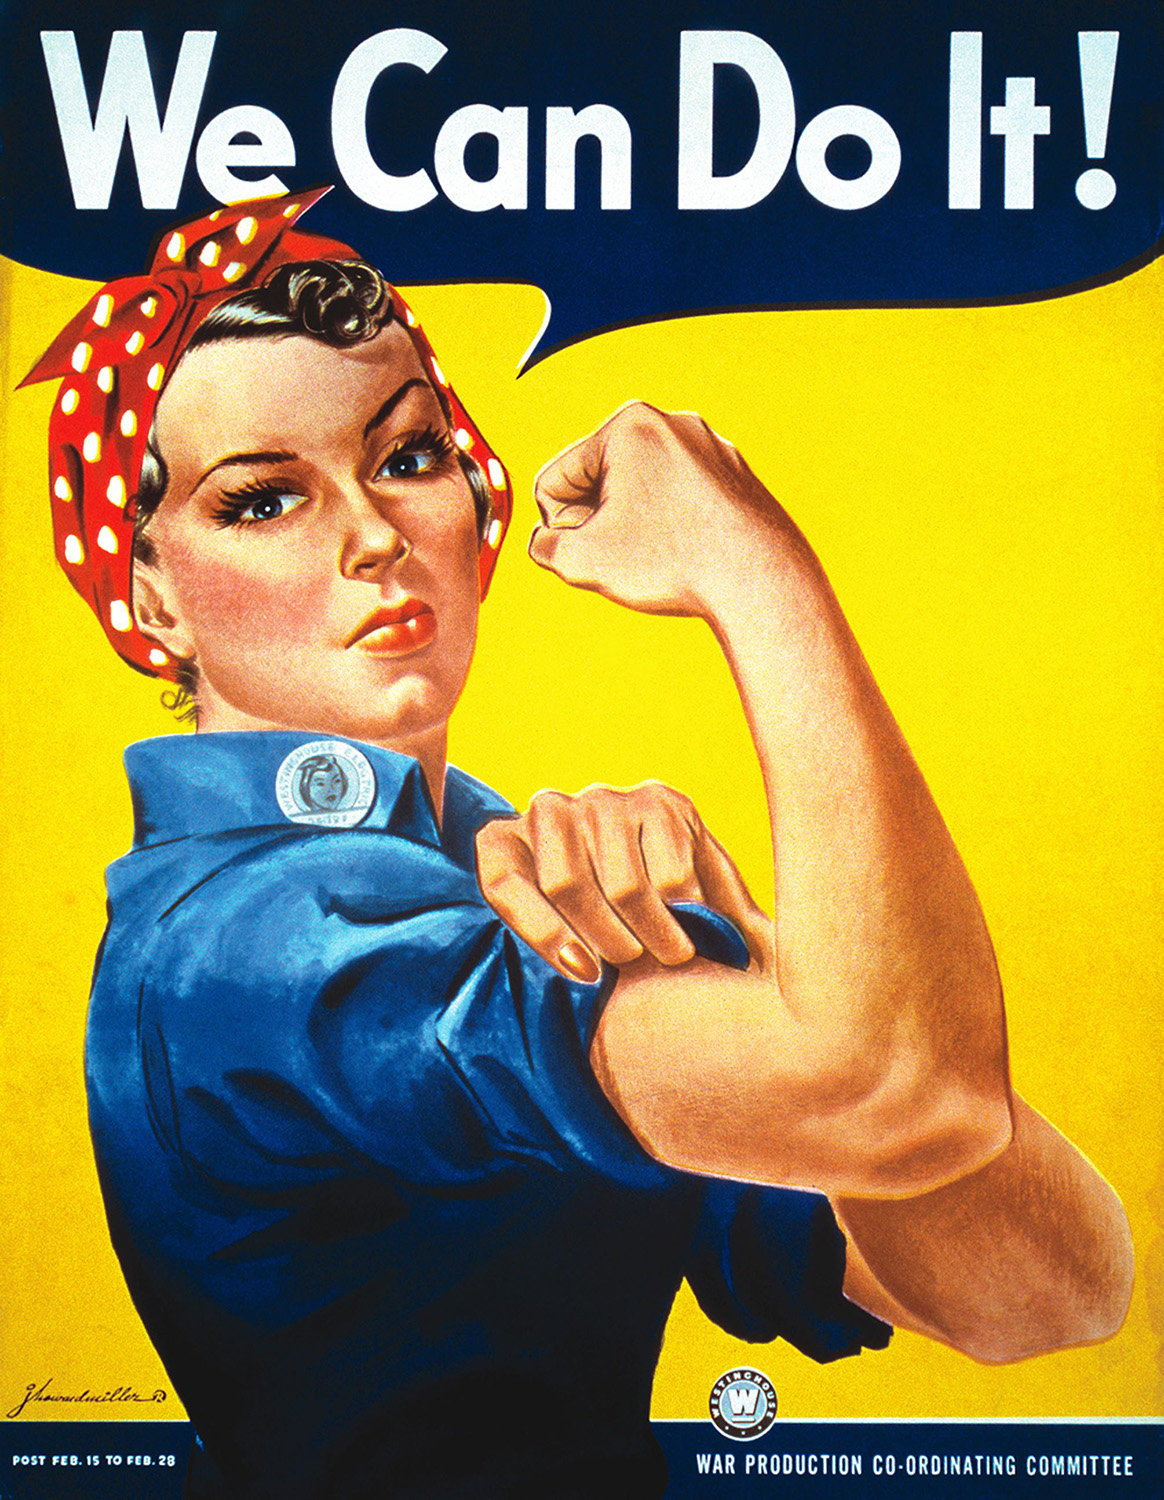 The classic Rosie the Riveter poster created for Westinghouse by Pittsburgh artist J. Howard Miller.